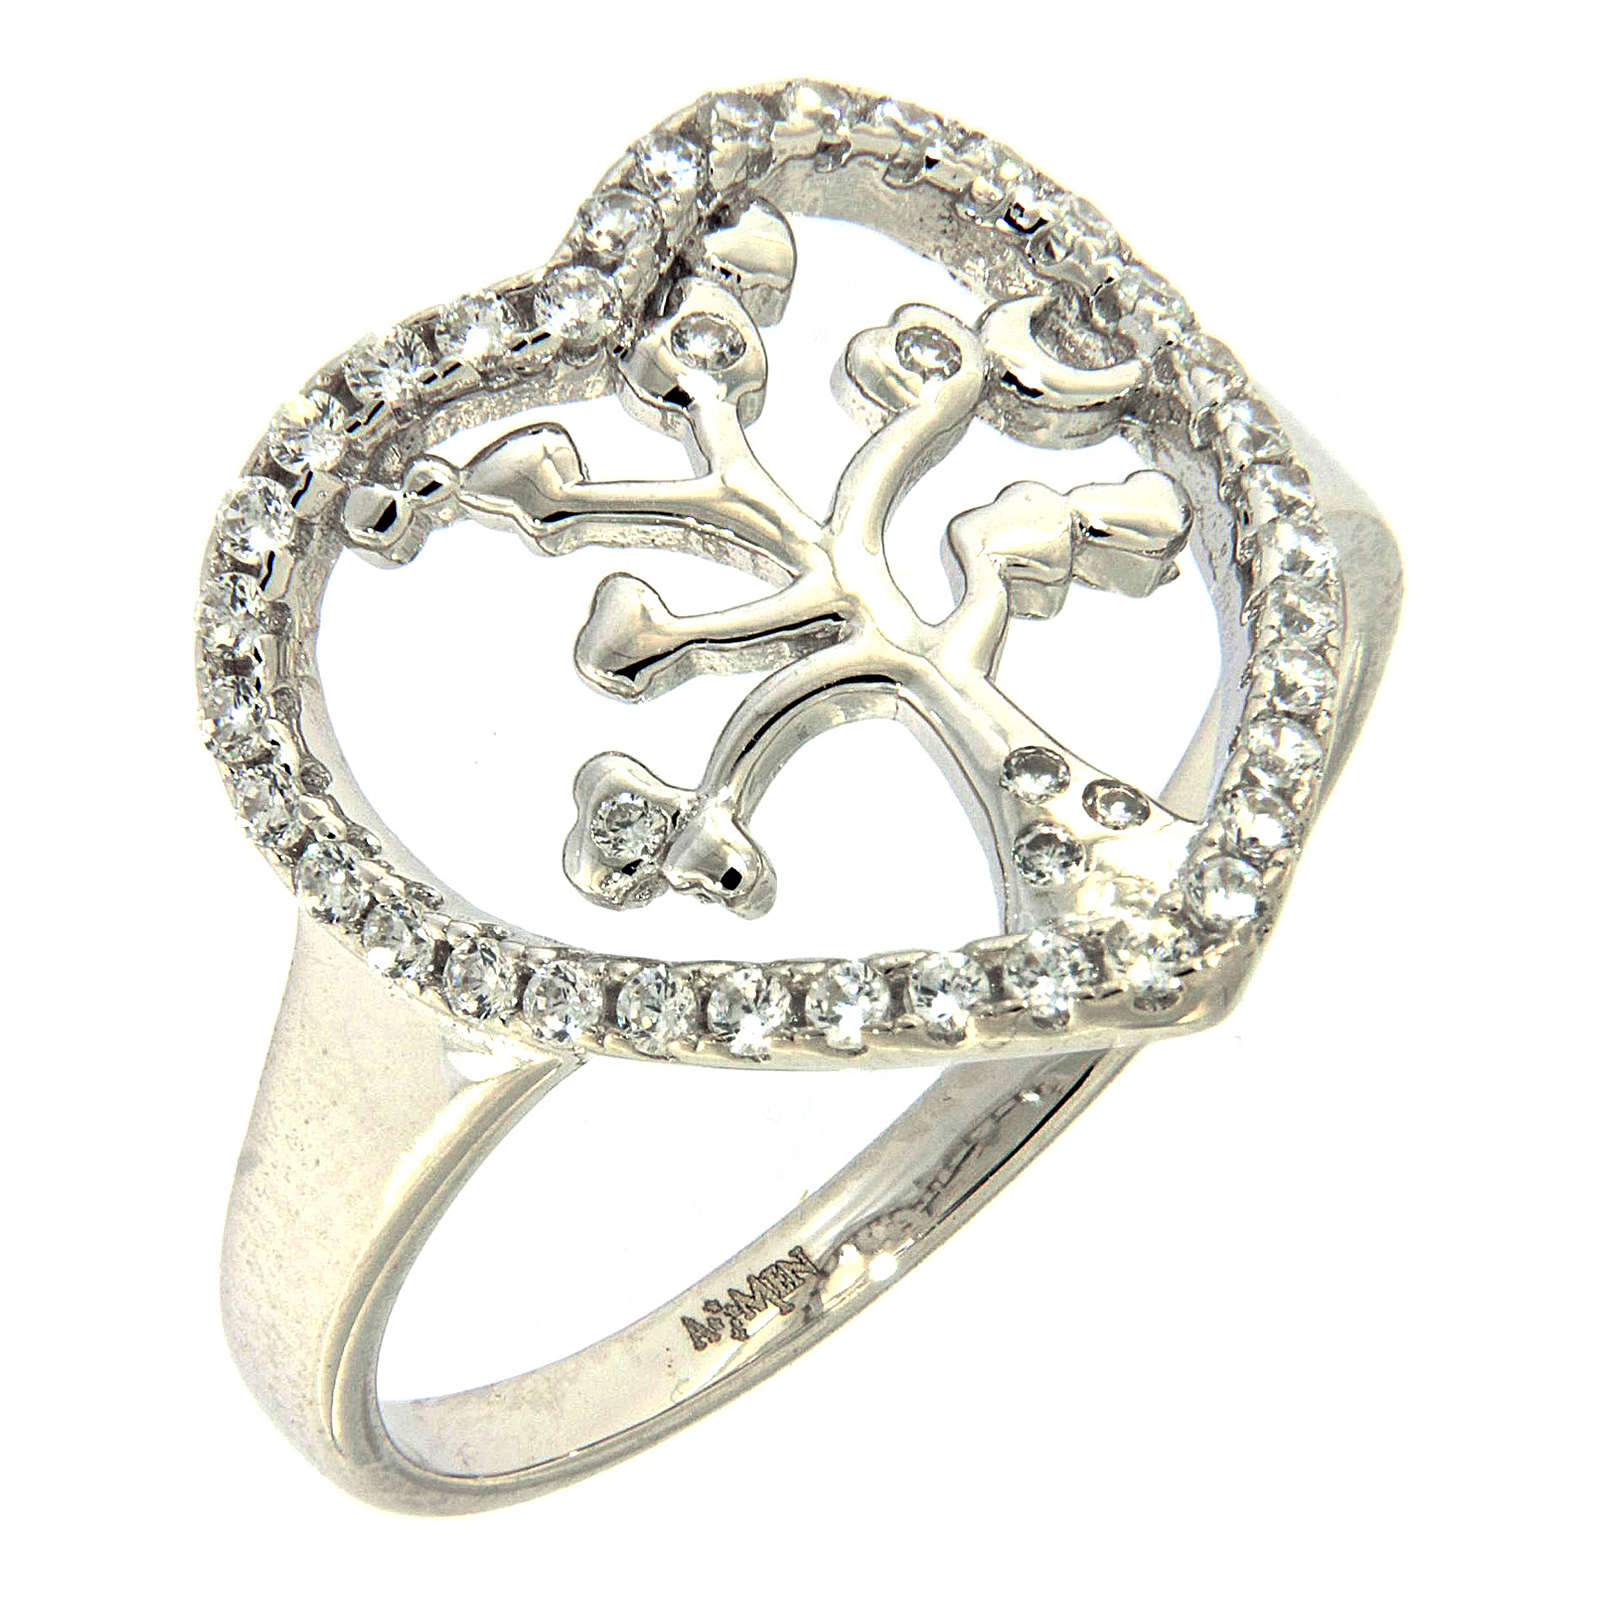 AMEN ring in 925 sterling silver finished in rhodium with zirconate heart and tree 3